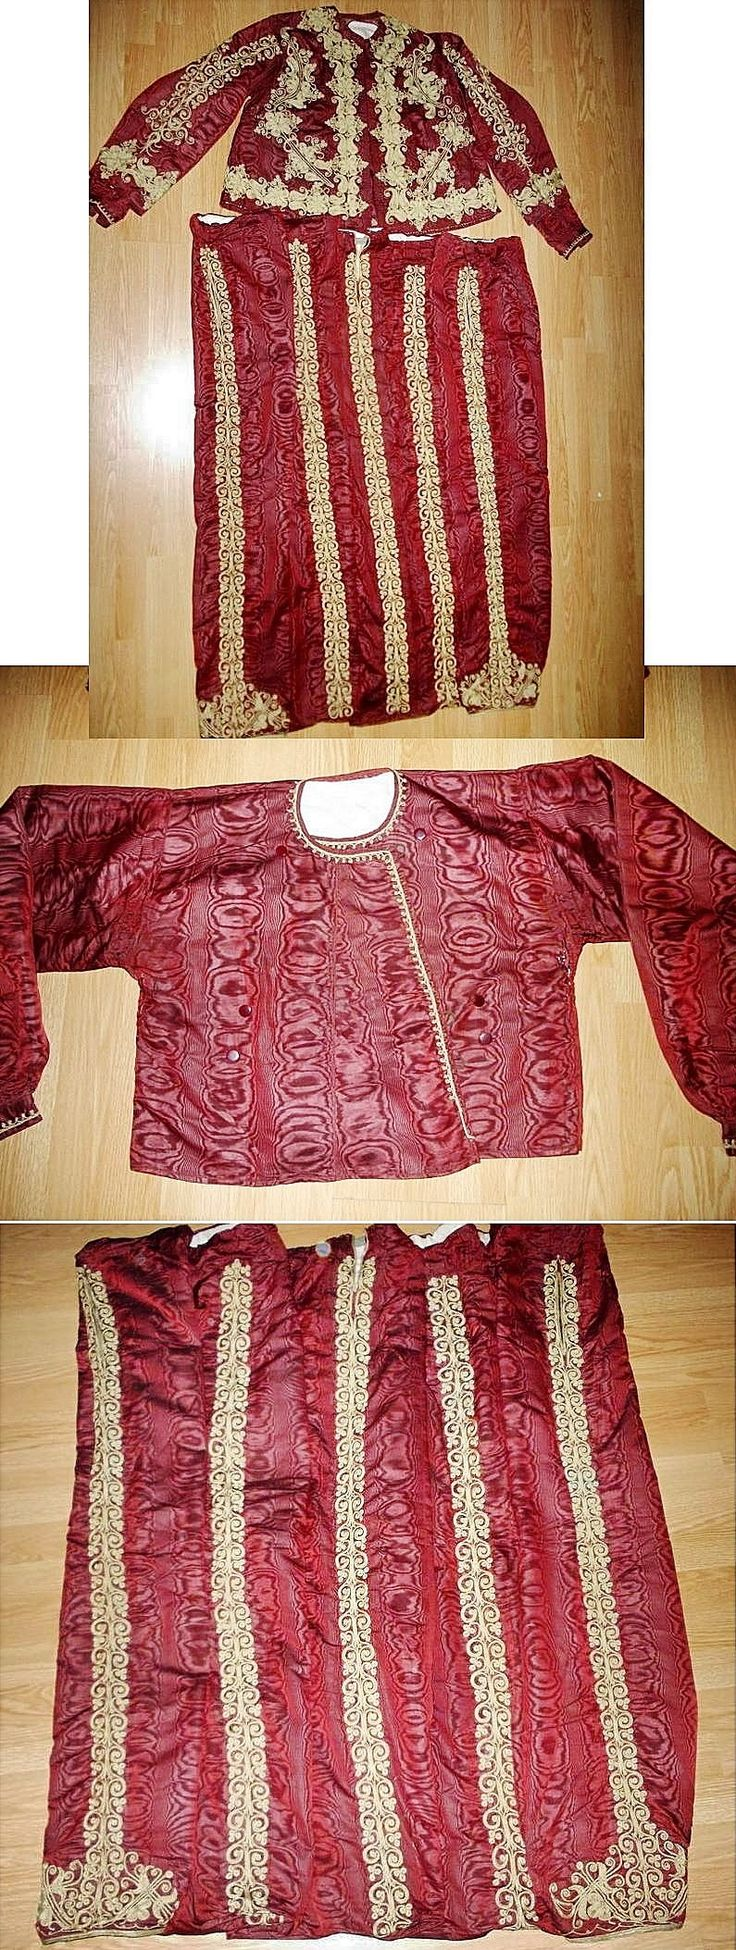 Woman's festive ensemble, from Konya.  Late-Ottoman, ca. 1900.  Consisting of a long-sleeved vest, a shirt (middle picture) and baggy trousers (bottom picture).  Moiré silk, adorned with embroideries (golden metal thread in 'tutturma' technique / applied cord).  (Source: Antika Osmanlı Tekstil, Istanbul).